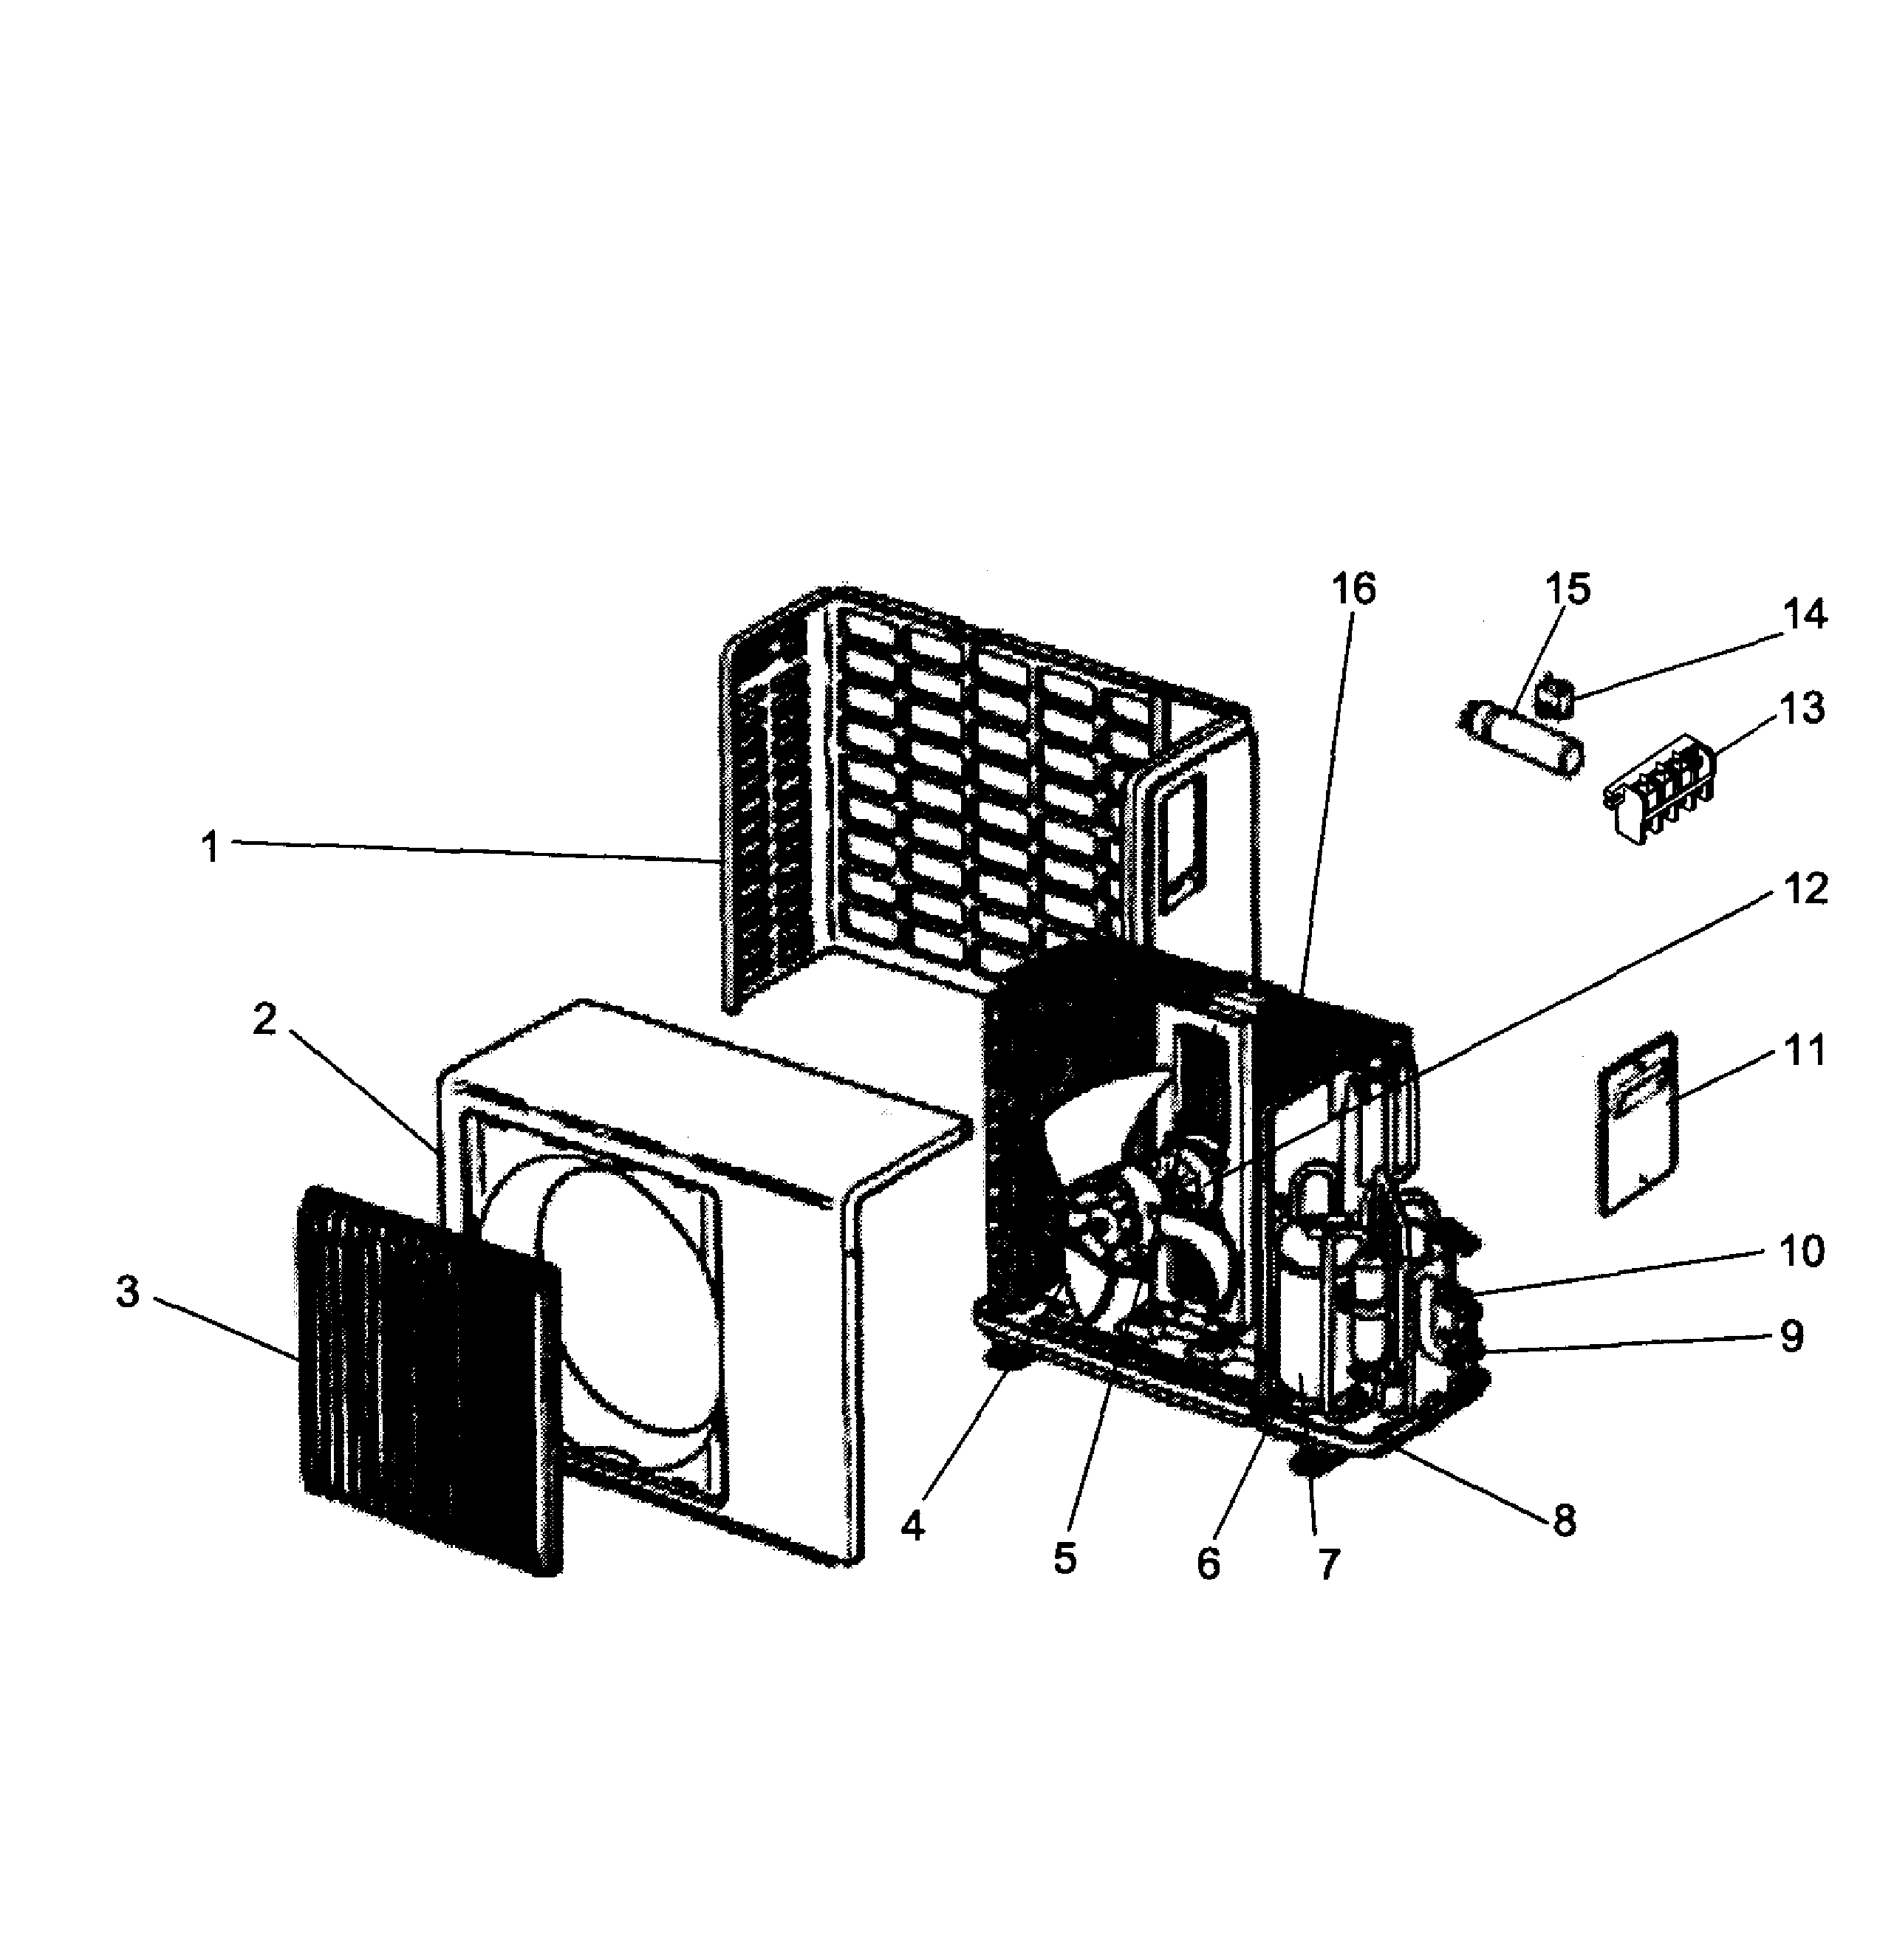 Outdoor Unit Diagram And Parts List For Mitsubishi